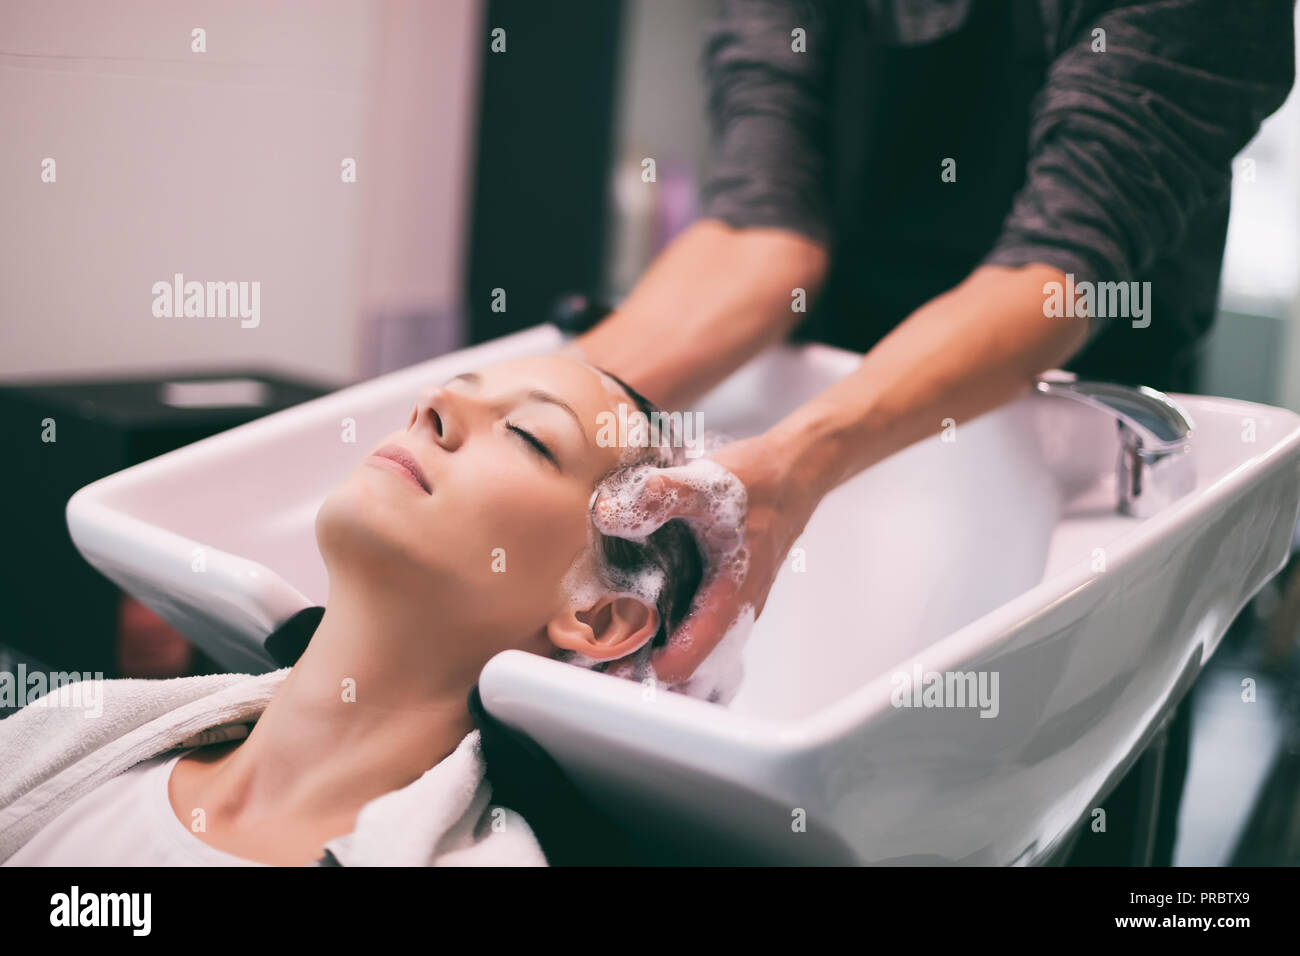 Young woman getting new hairstyle at professional hair styling saloon. Hairdresser is massaging her head. - Stock Image